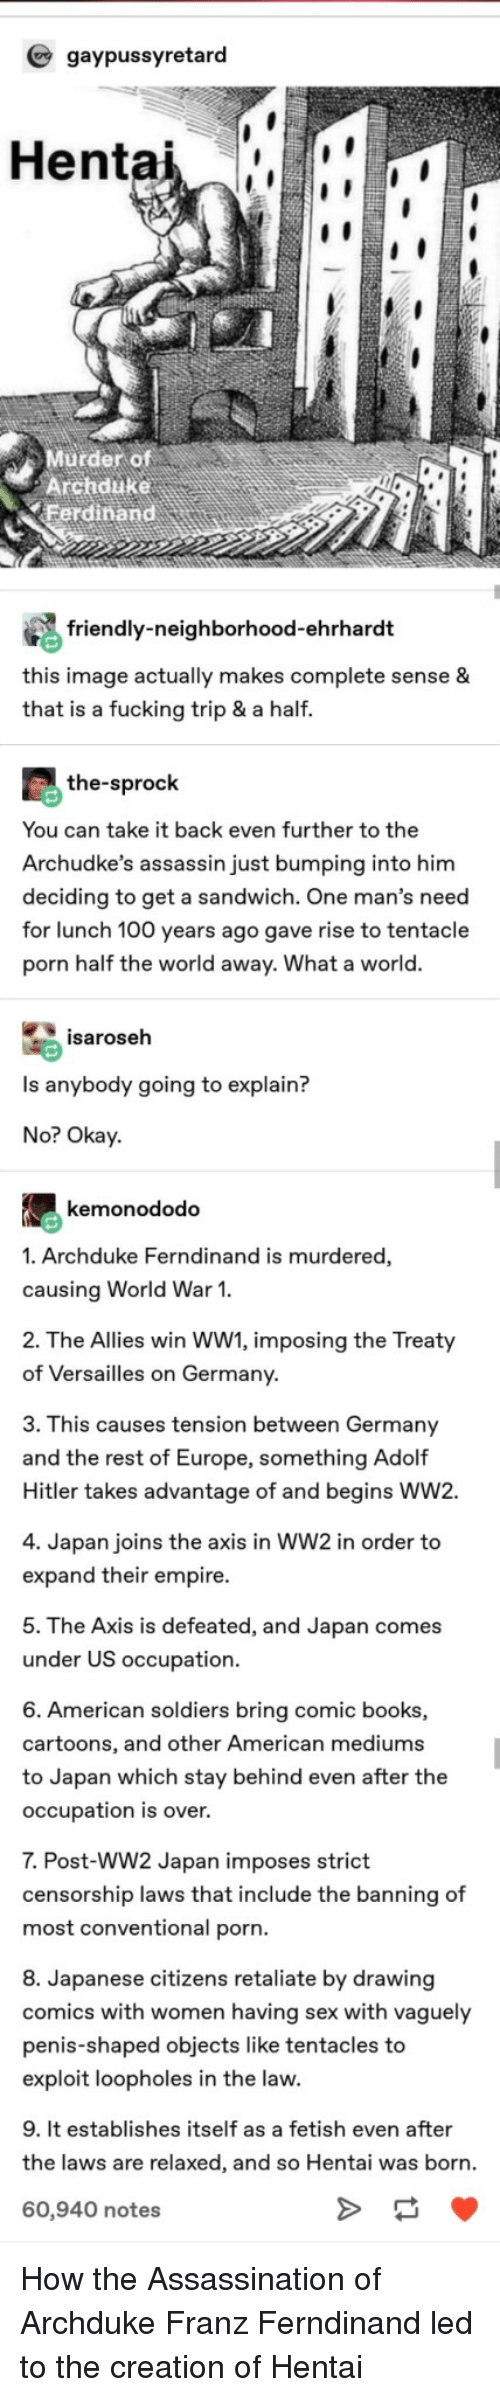 tentacles: gaypussyretard  Hentai  Murder of  Archduke  erdinand  friendly-neighborhood-ehrhardt  this image actually makes complete sense &  that is a fucking trip & a half.  the-sprock  You can take it back even further to the  Archudke's assassin just bumping into him  deciding to get a sandwich. One man's need  for lunch 100 years ago gave rise to tentacle  porn half the world away. What a world.  isaroseh  Is anybody going to explain?  No? Okay  kemonododo  1. Archduke Ferndinand is murdered,  causing World War 1.  2. The Allies win WW1, imposing the Treaty  of Versailles on Germany  3. This causes tension between Germany  and the rest of Europe, something Adolf  Hitler takes advantage of and begins WW2.  4. Japan joins the axis in WW2 in order to  expand their empire.  5. The Axis is defeated, and Japan comes  under US occupation  6. American soldiers bring comic books,  cartoons, and other American mediums  to Japan which stay behind even after the  occupation is over.  7. Post-WW2 Japan imposes strict  censorship laws that include the banning of  most conventional porn.  8. Japanese citizens retaliate by drawing  comics with women having sex with vaguely  penis-shaped objects like tentacles to  exploit loopholes in the law.  9. It establishes itself as a fetish even after  the laws are relaxed, and so Hentai was born.  60,940 notes How the Assassination of Archduke Franz Ferndinand led to the creation of Hentai